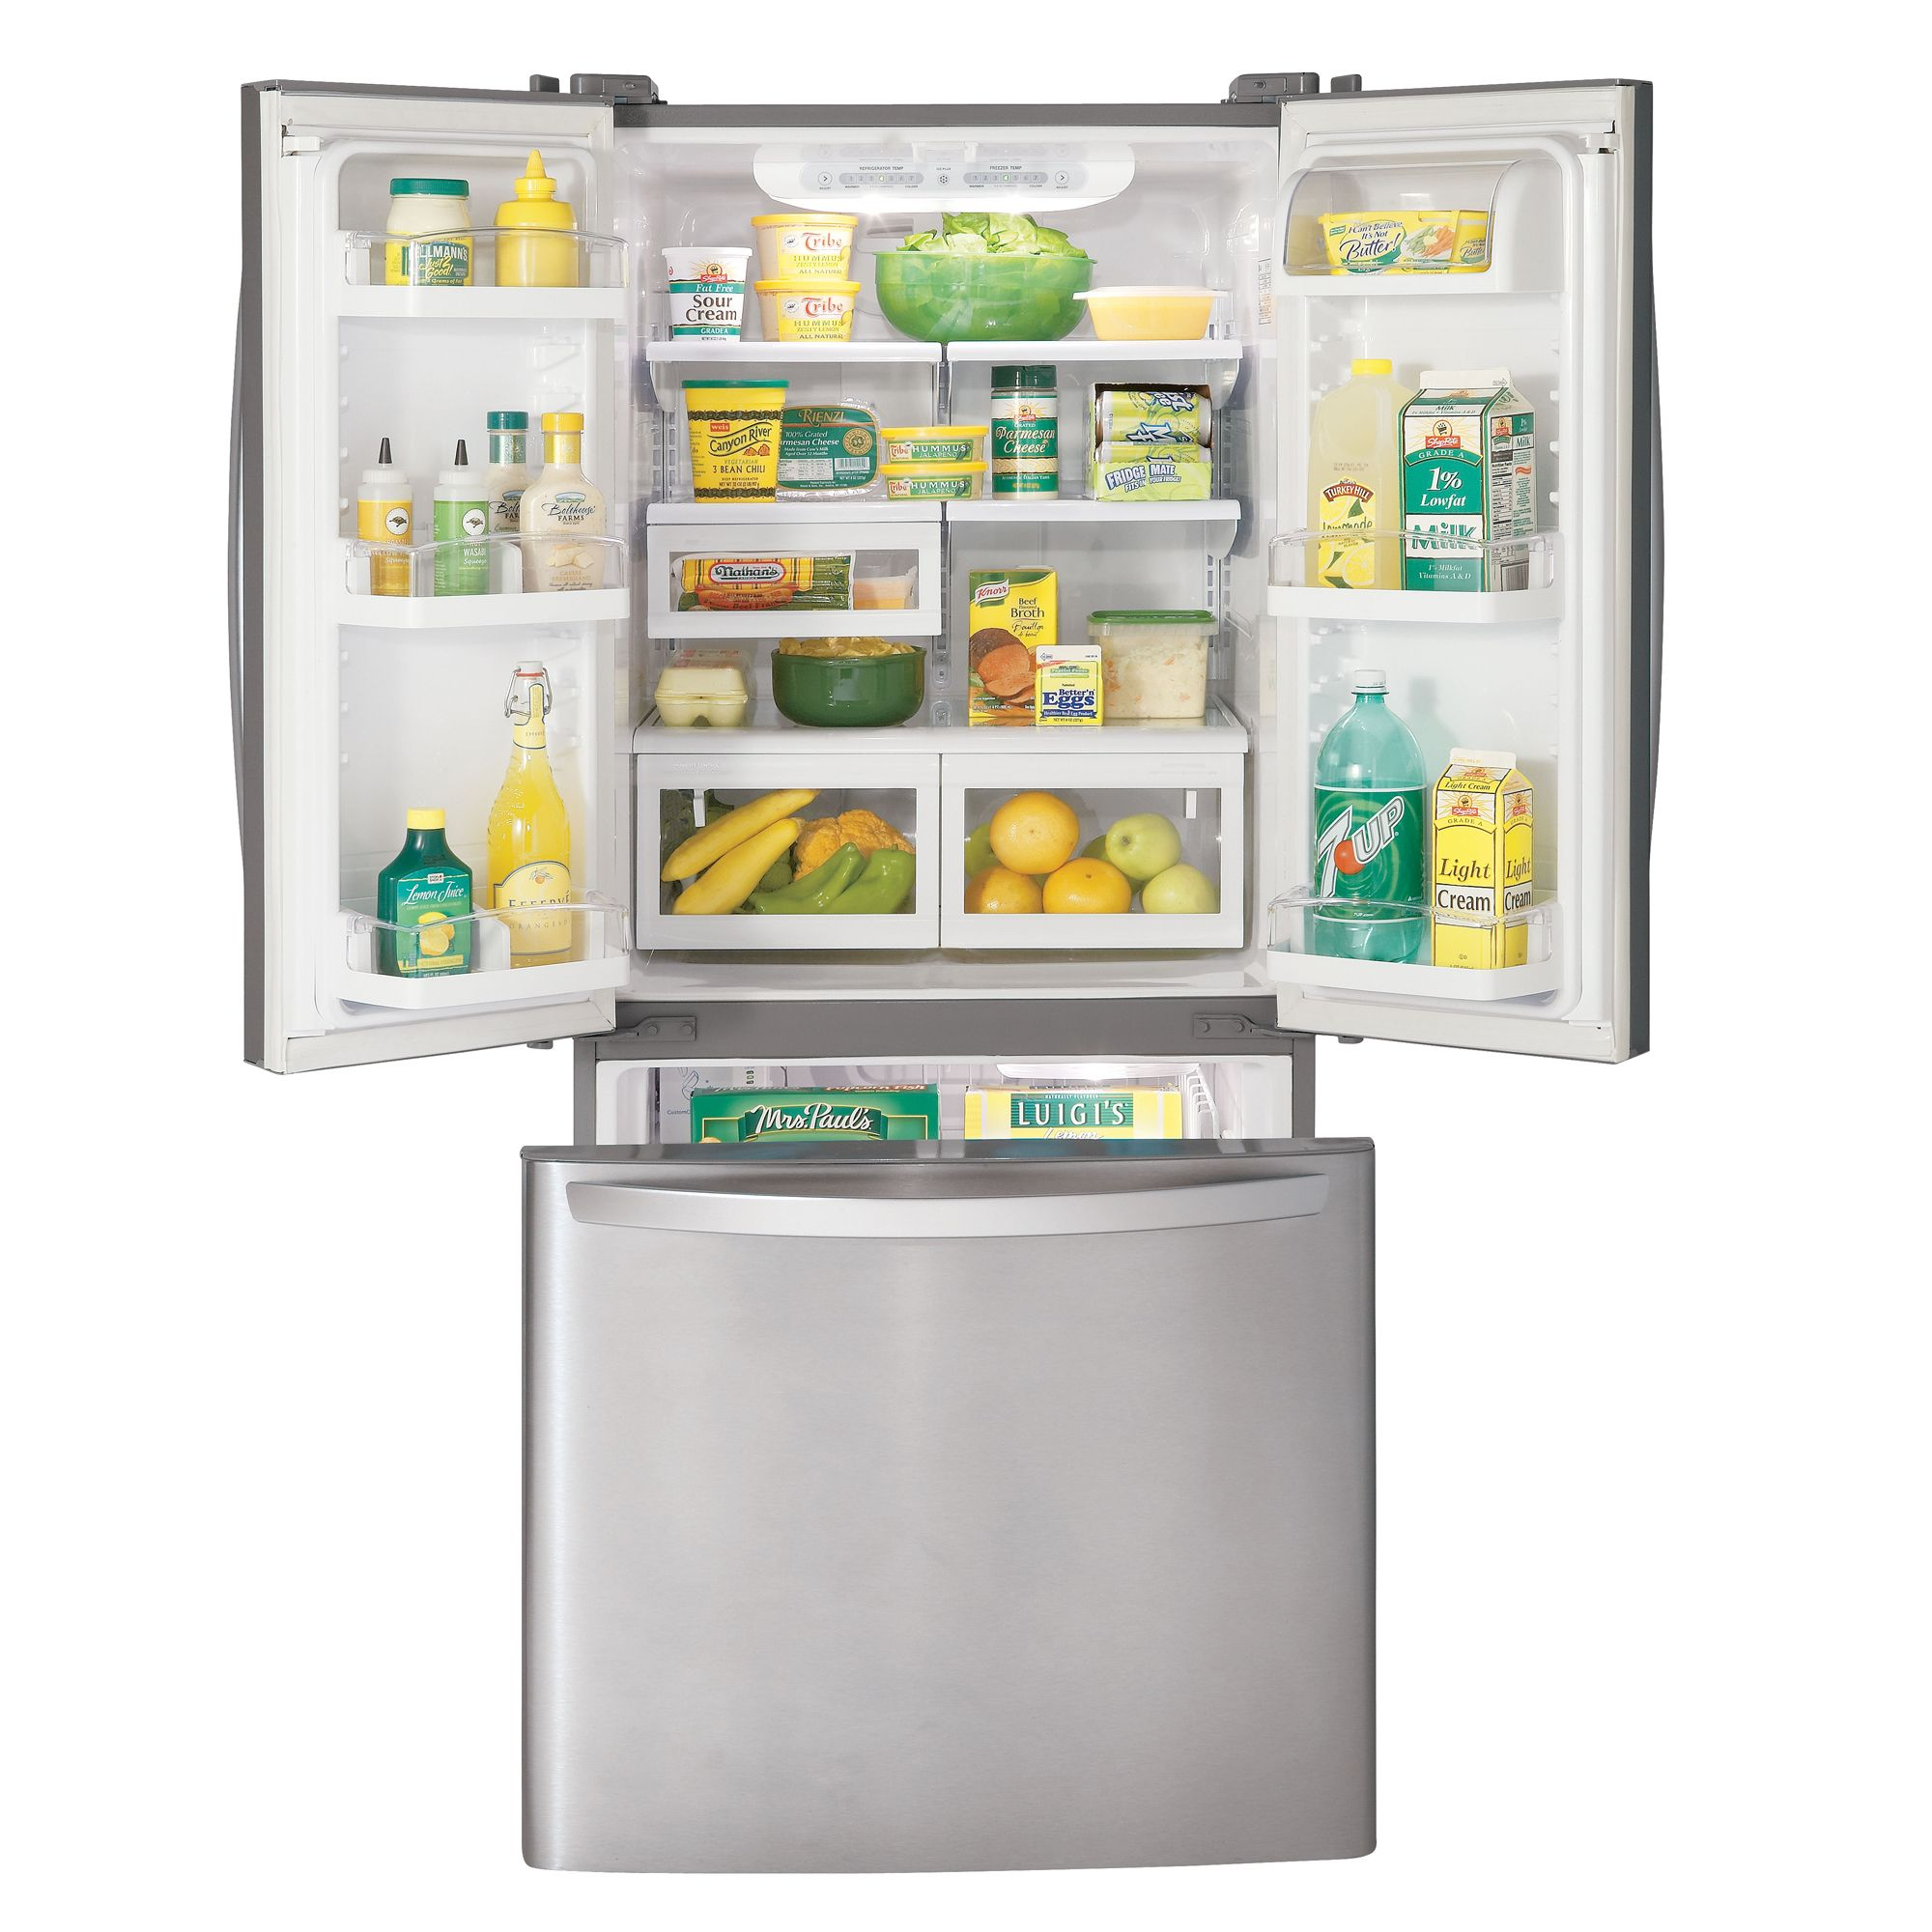 LG 23.0 cu. ft. French-Door Refrigerator